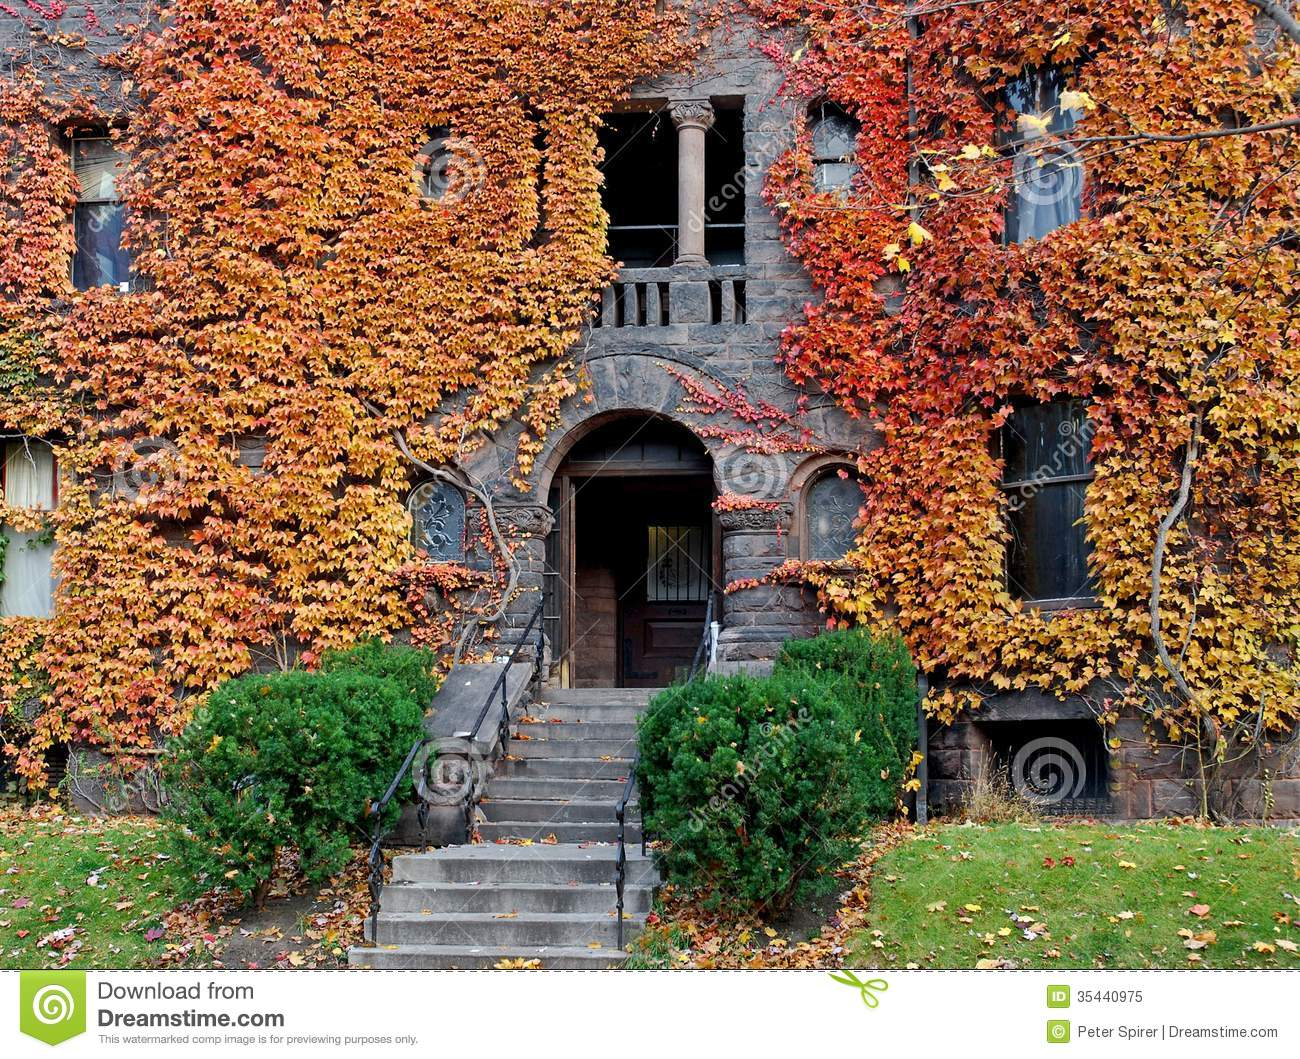 Free Desktop Wallpaper Fall Trees College Building With Fall Ivy Royalty Free Stock Photo